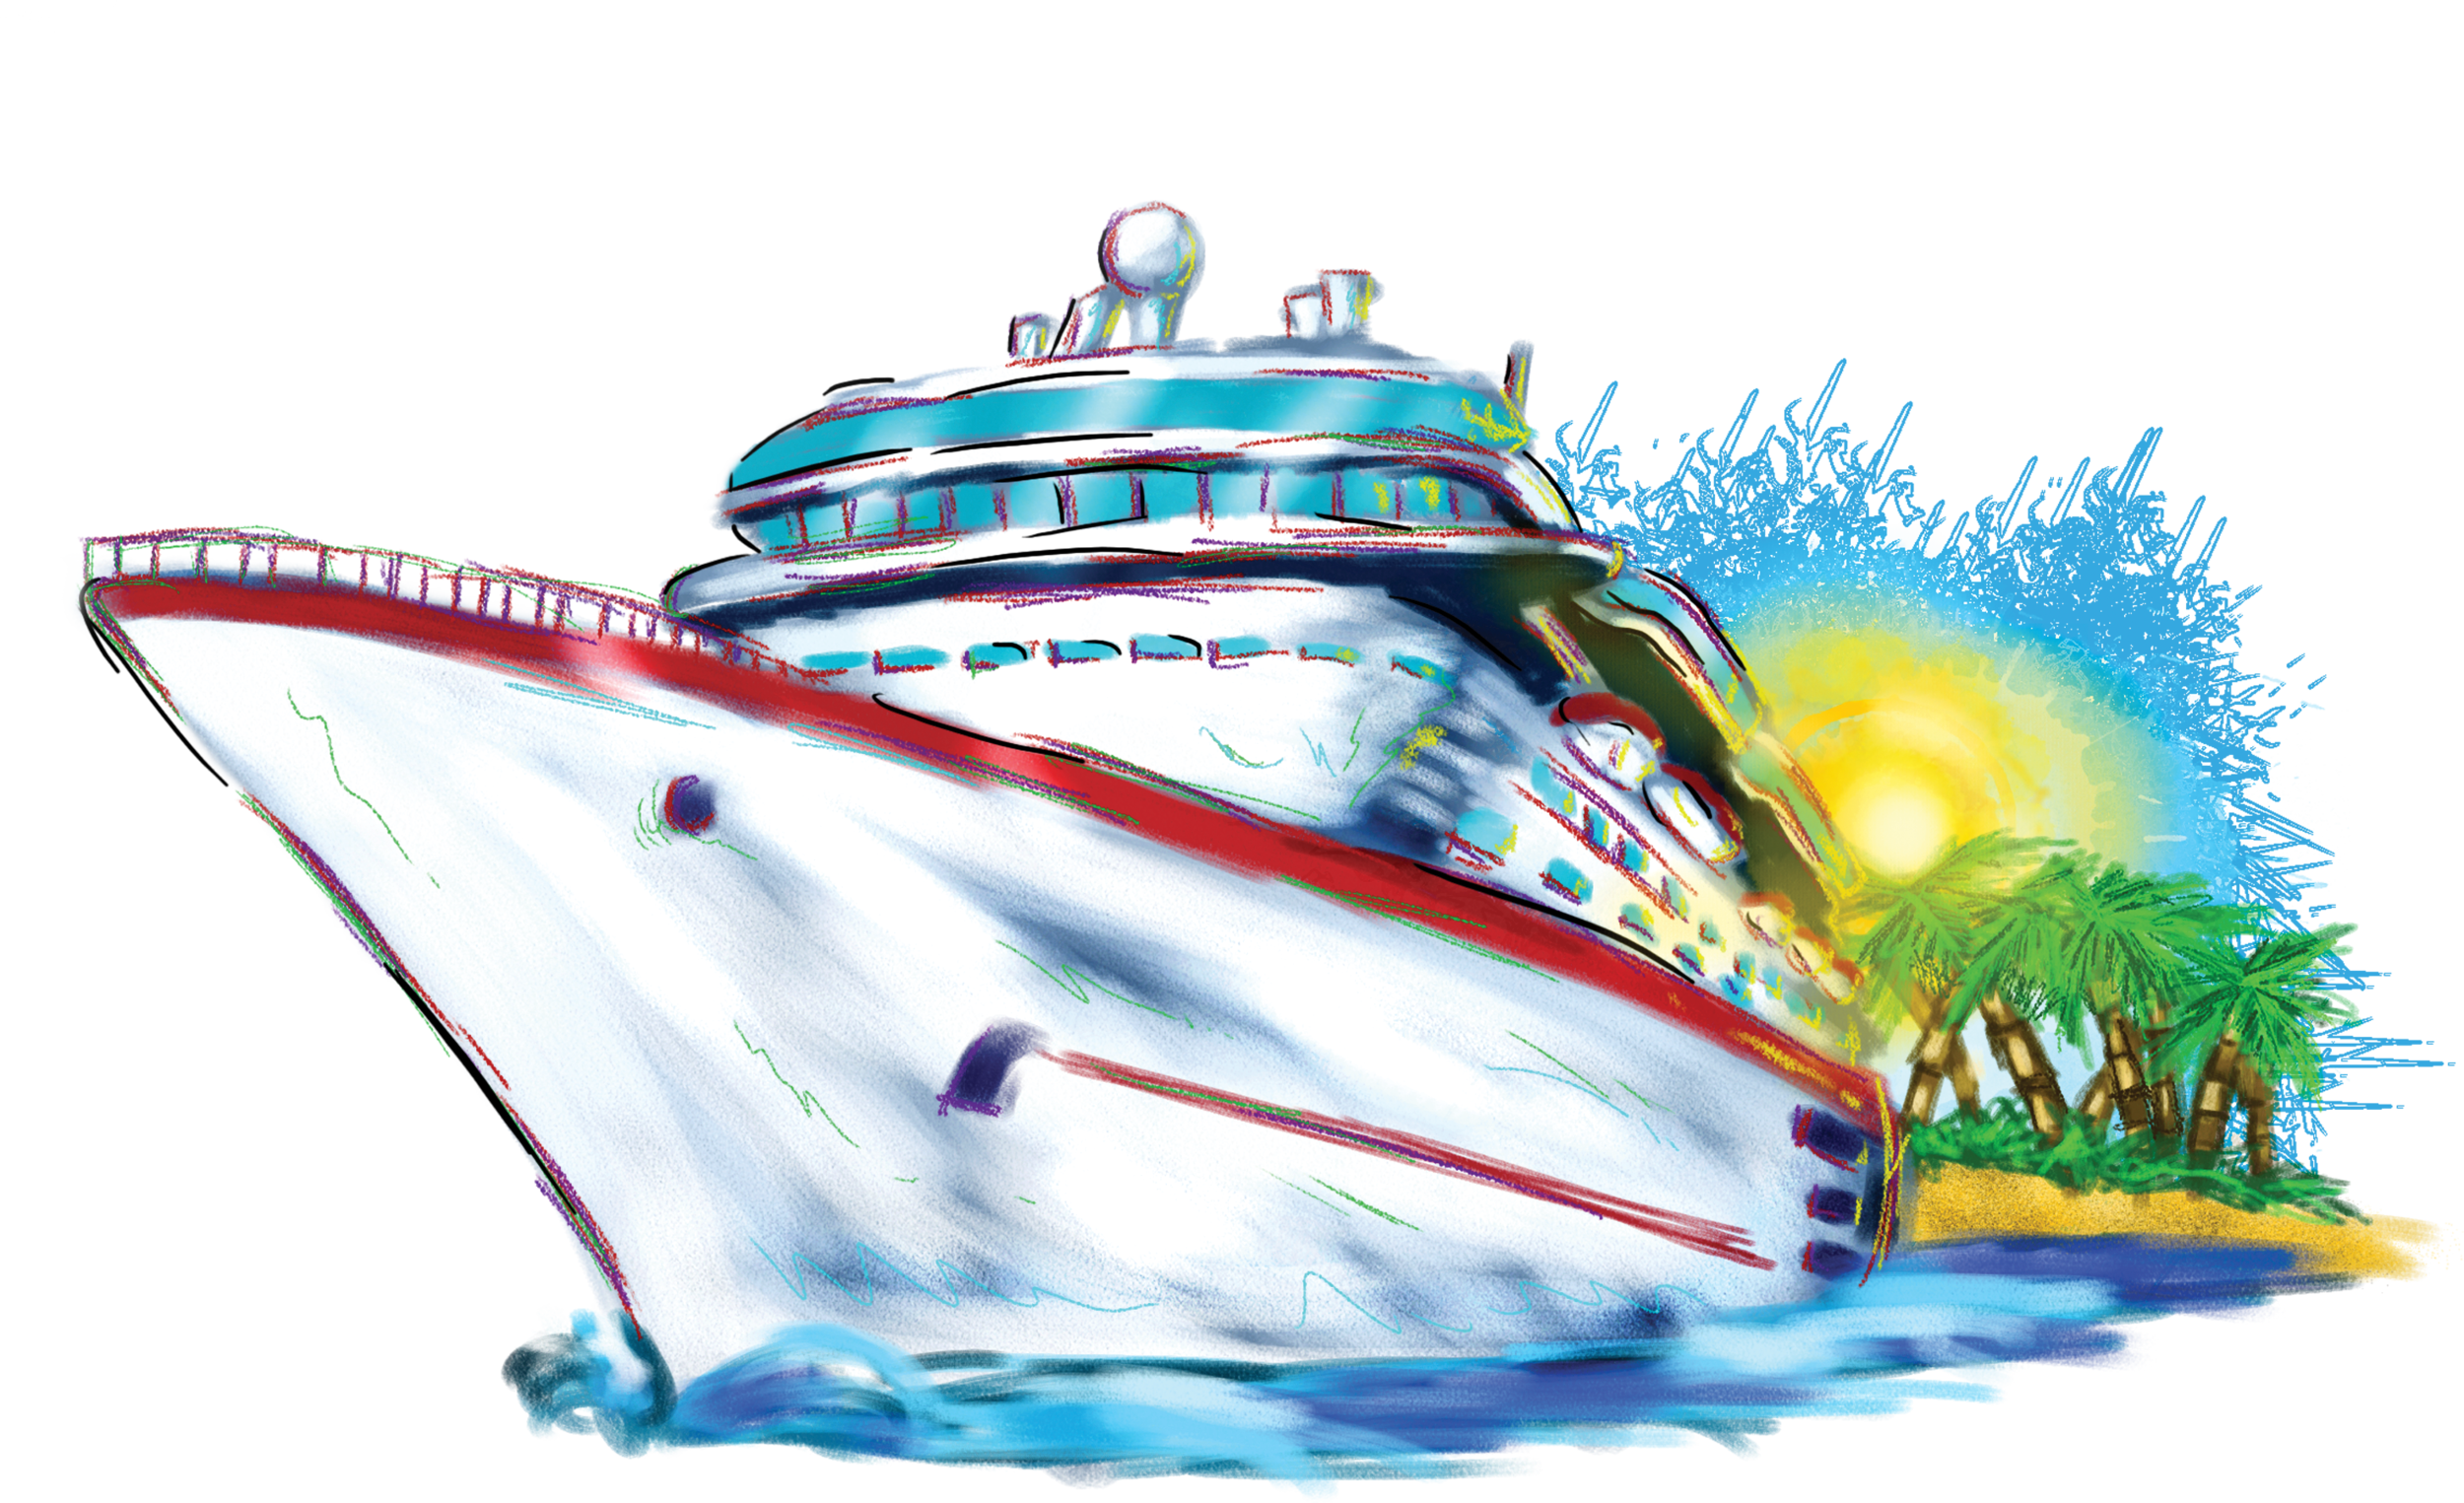 Boat clipart cruise ship 3 & Art com art